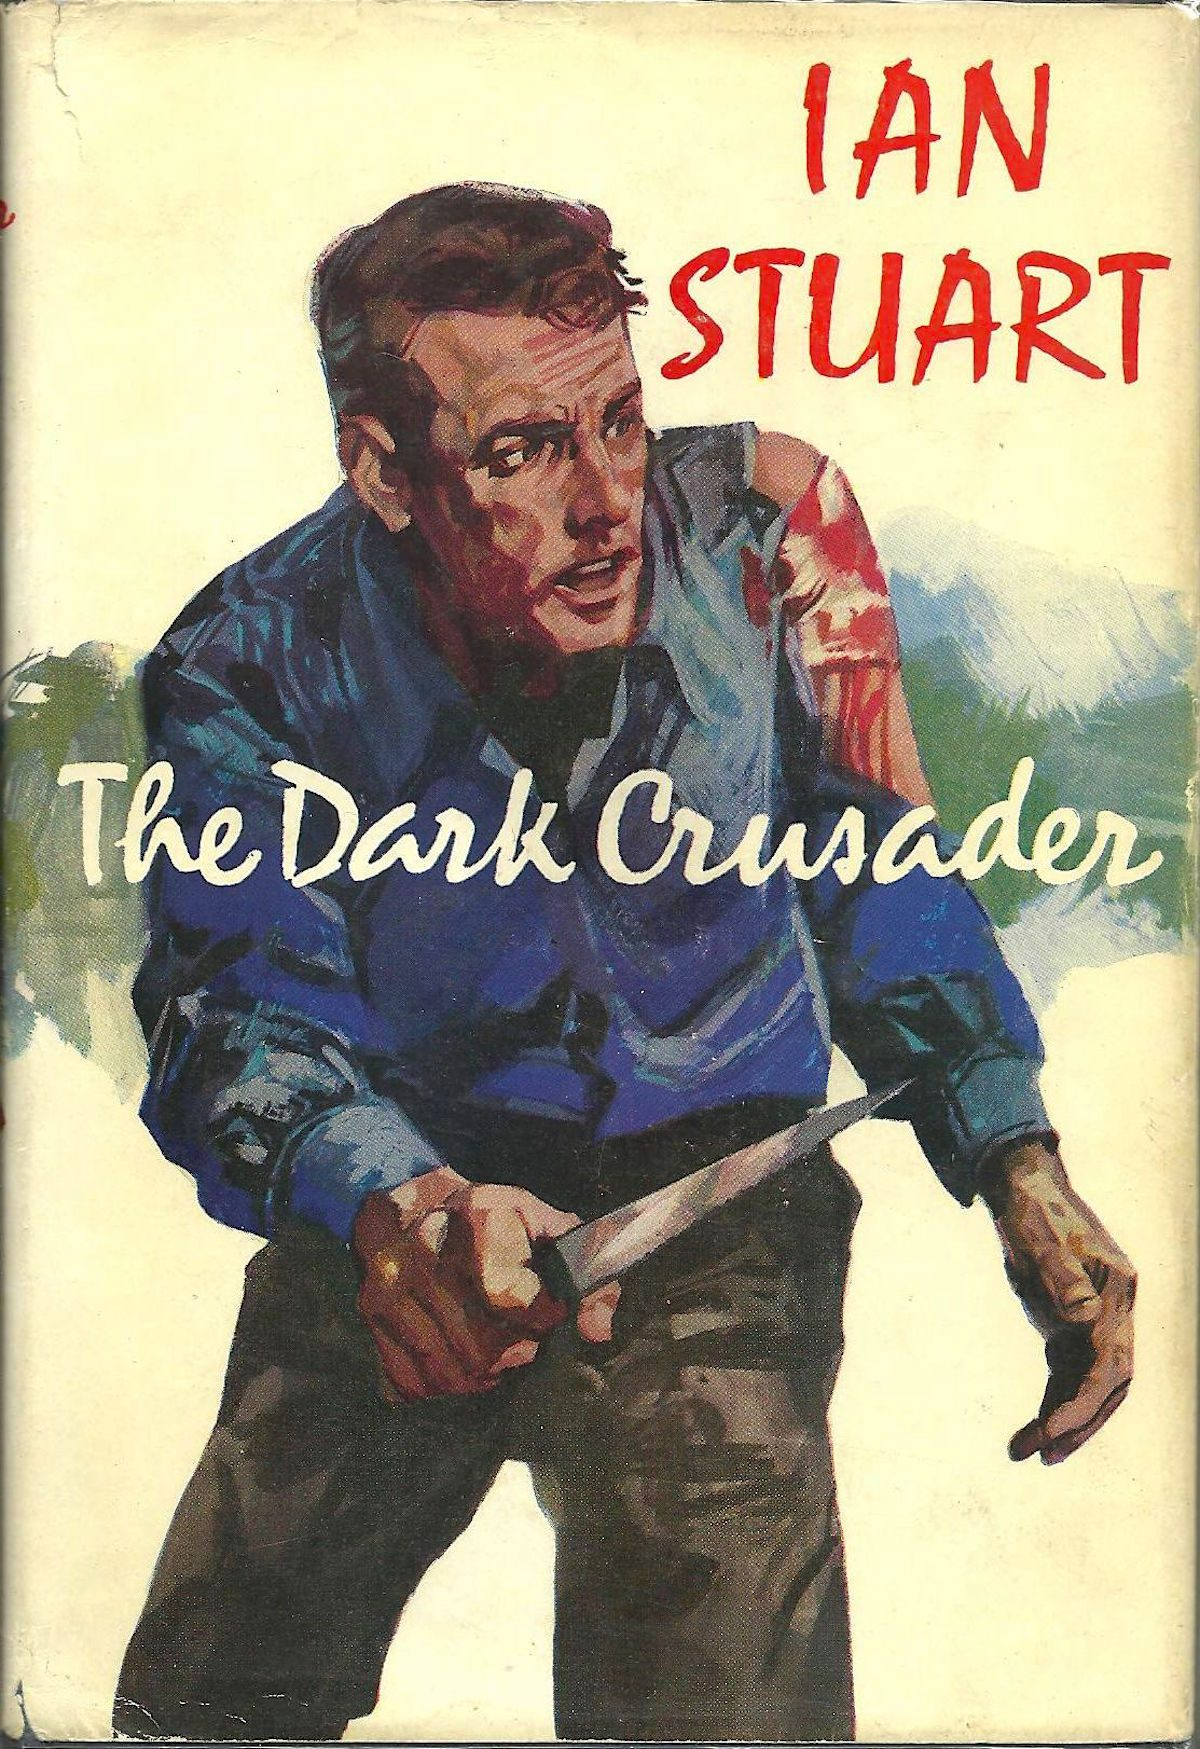 Alistair MacLean, Dark Crusader, Ian Stuart, book